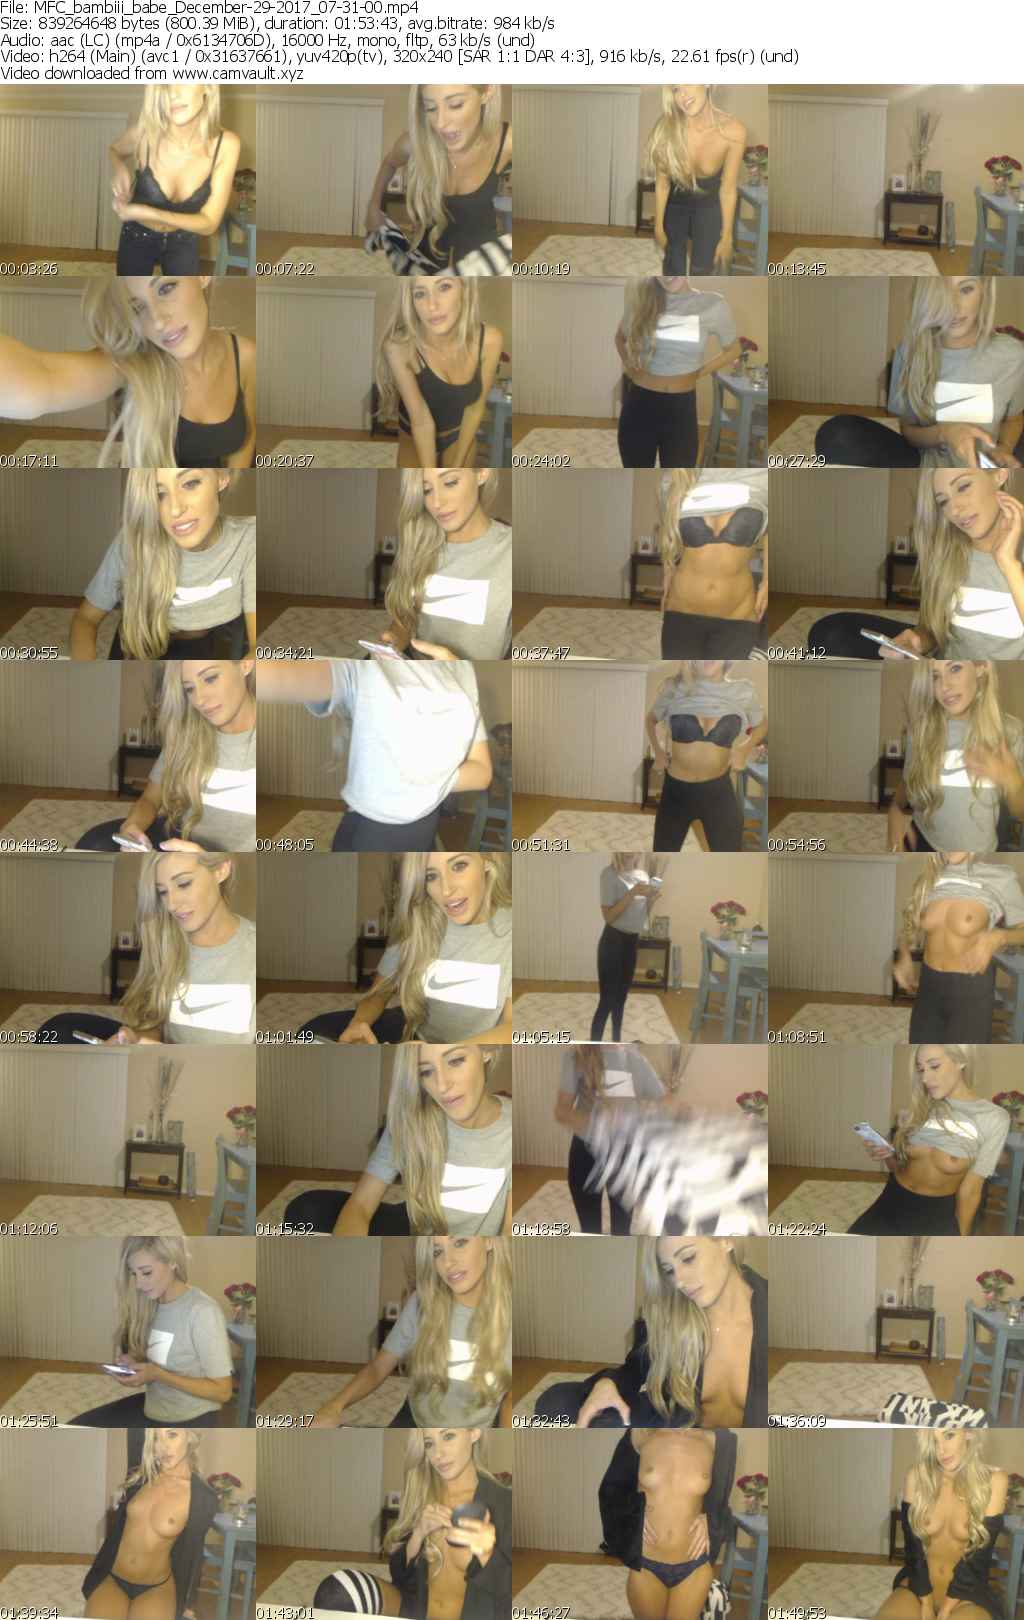 Video preview for model bambiii_babe